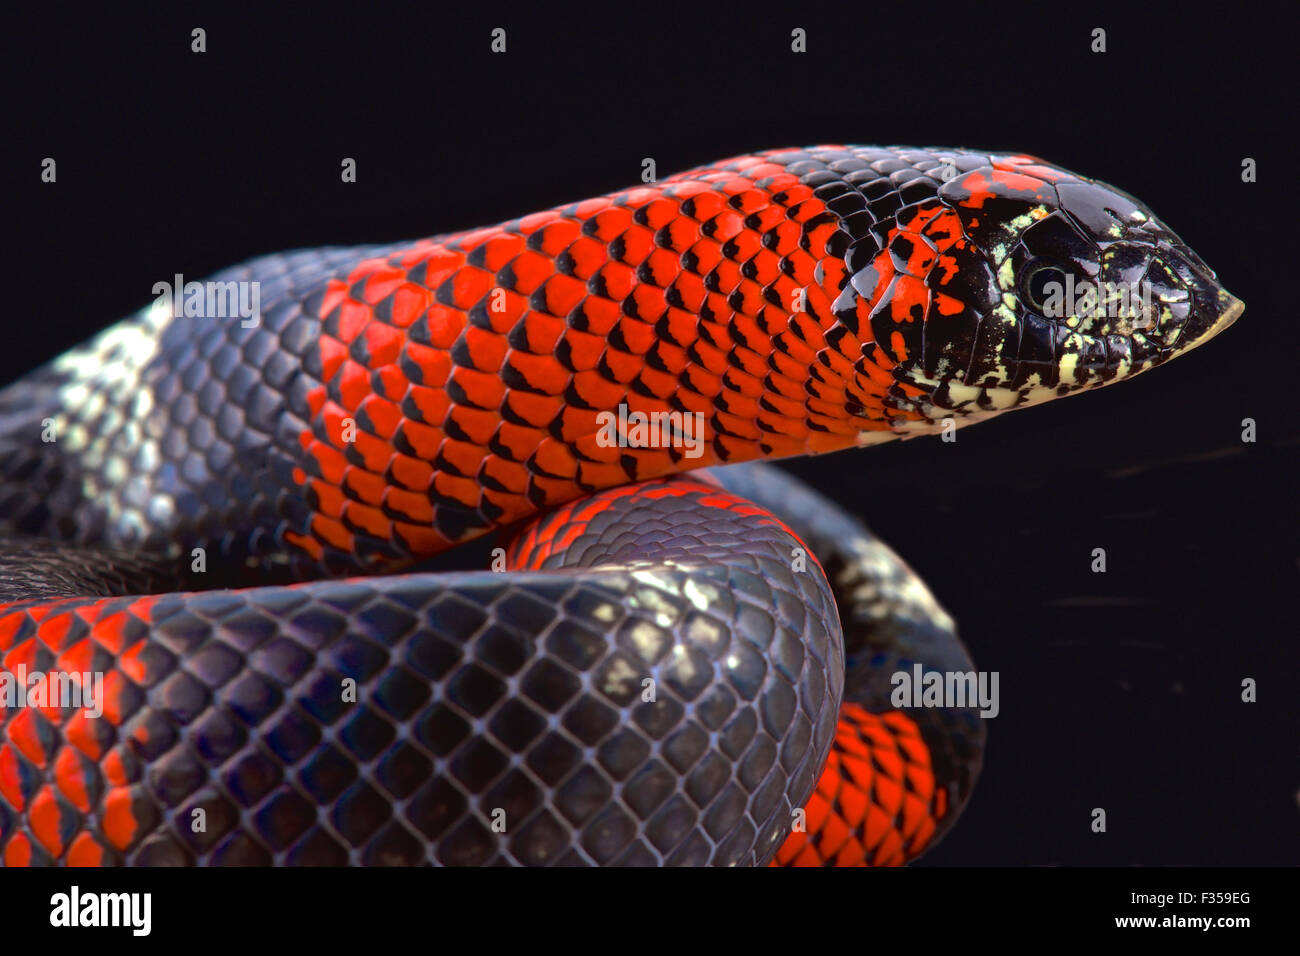 Tri-color hognose snake (Lystrophis pulcher) Immagini Stock